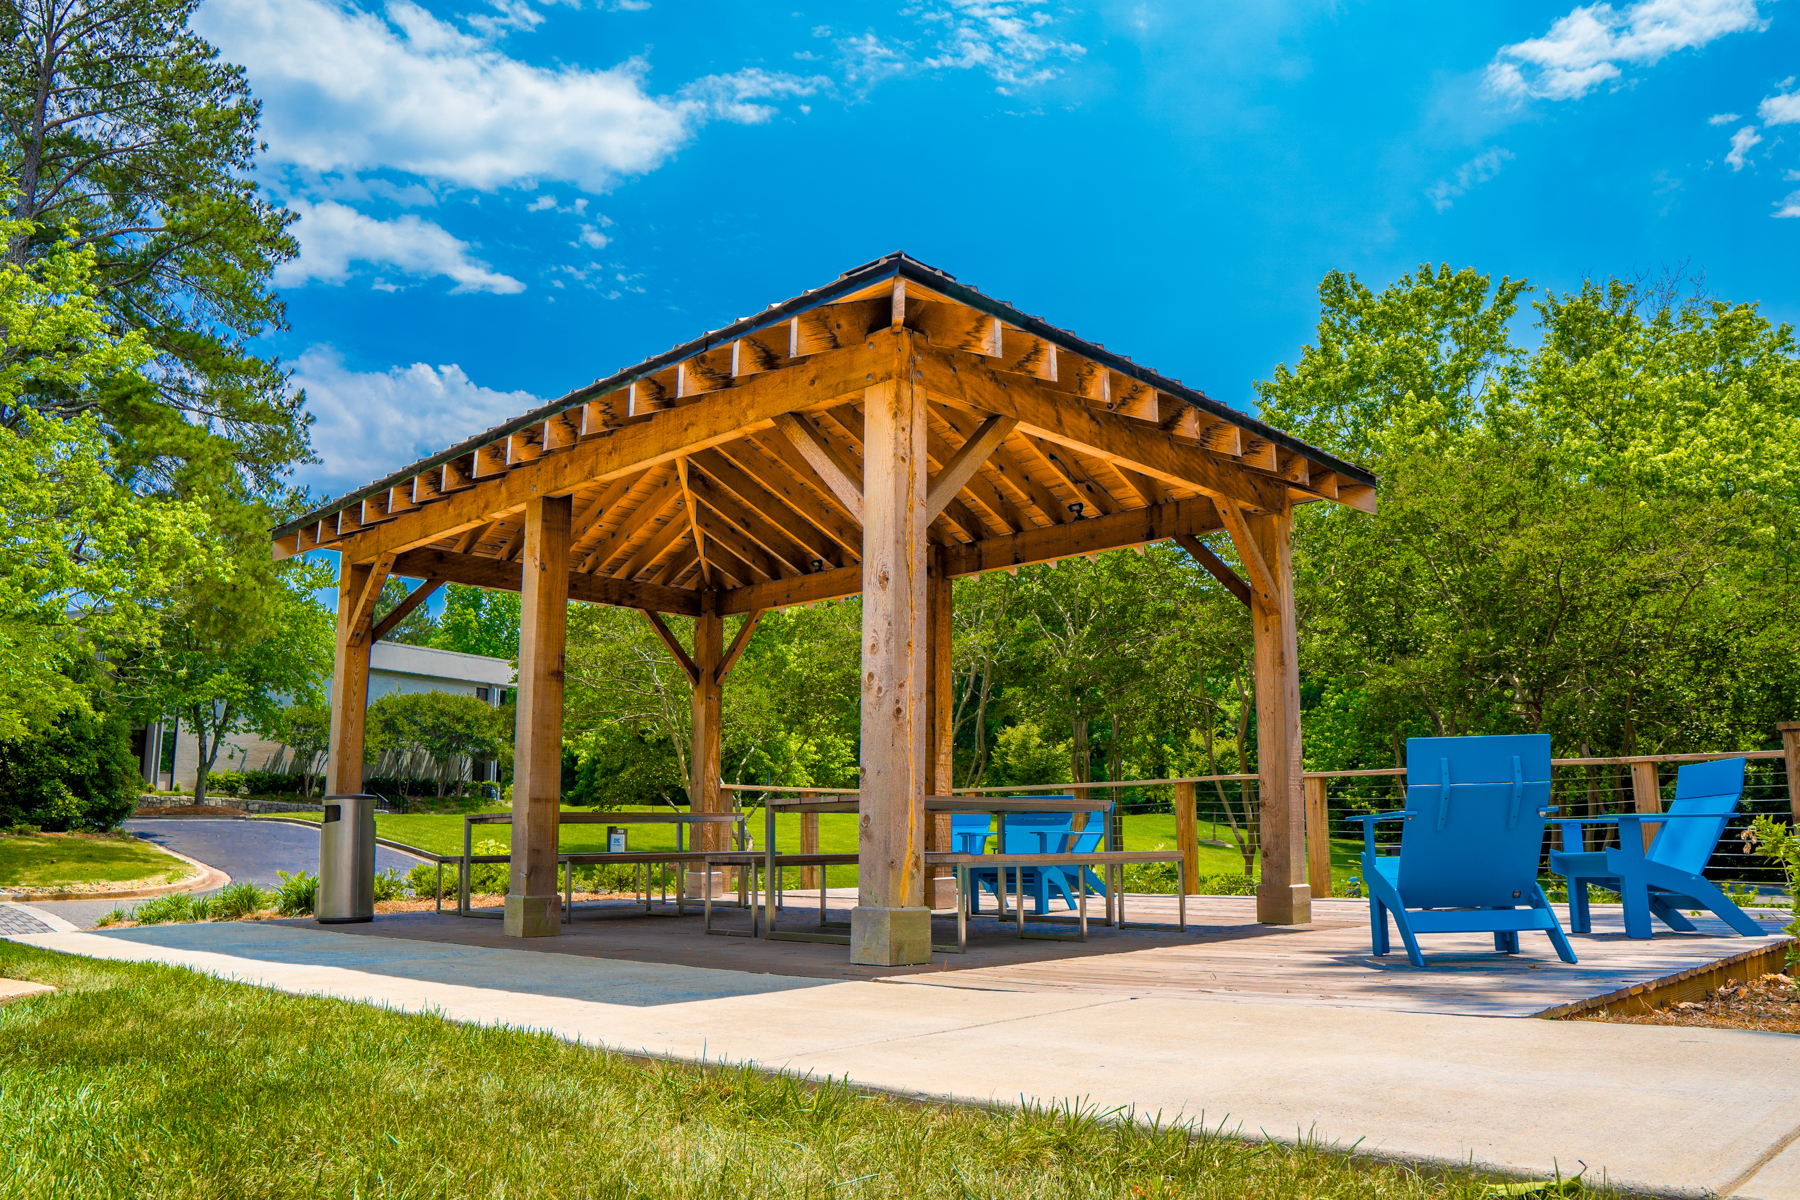 Commercial landscaping enhancements and maintenance